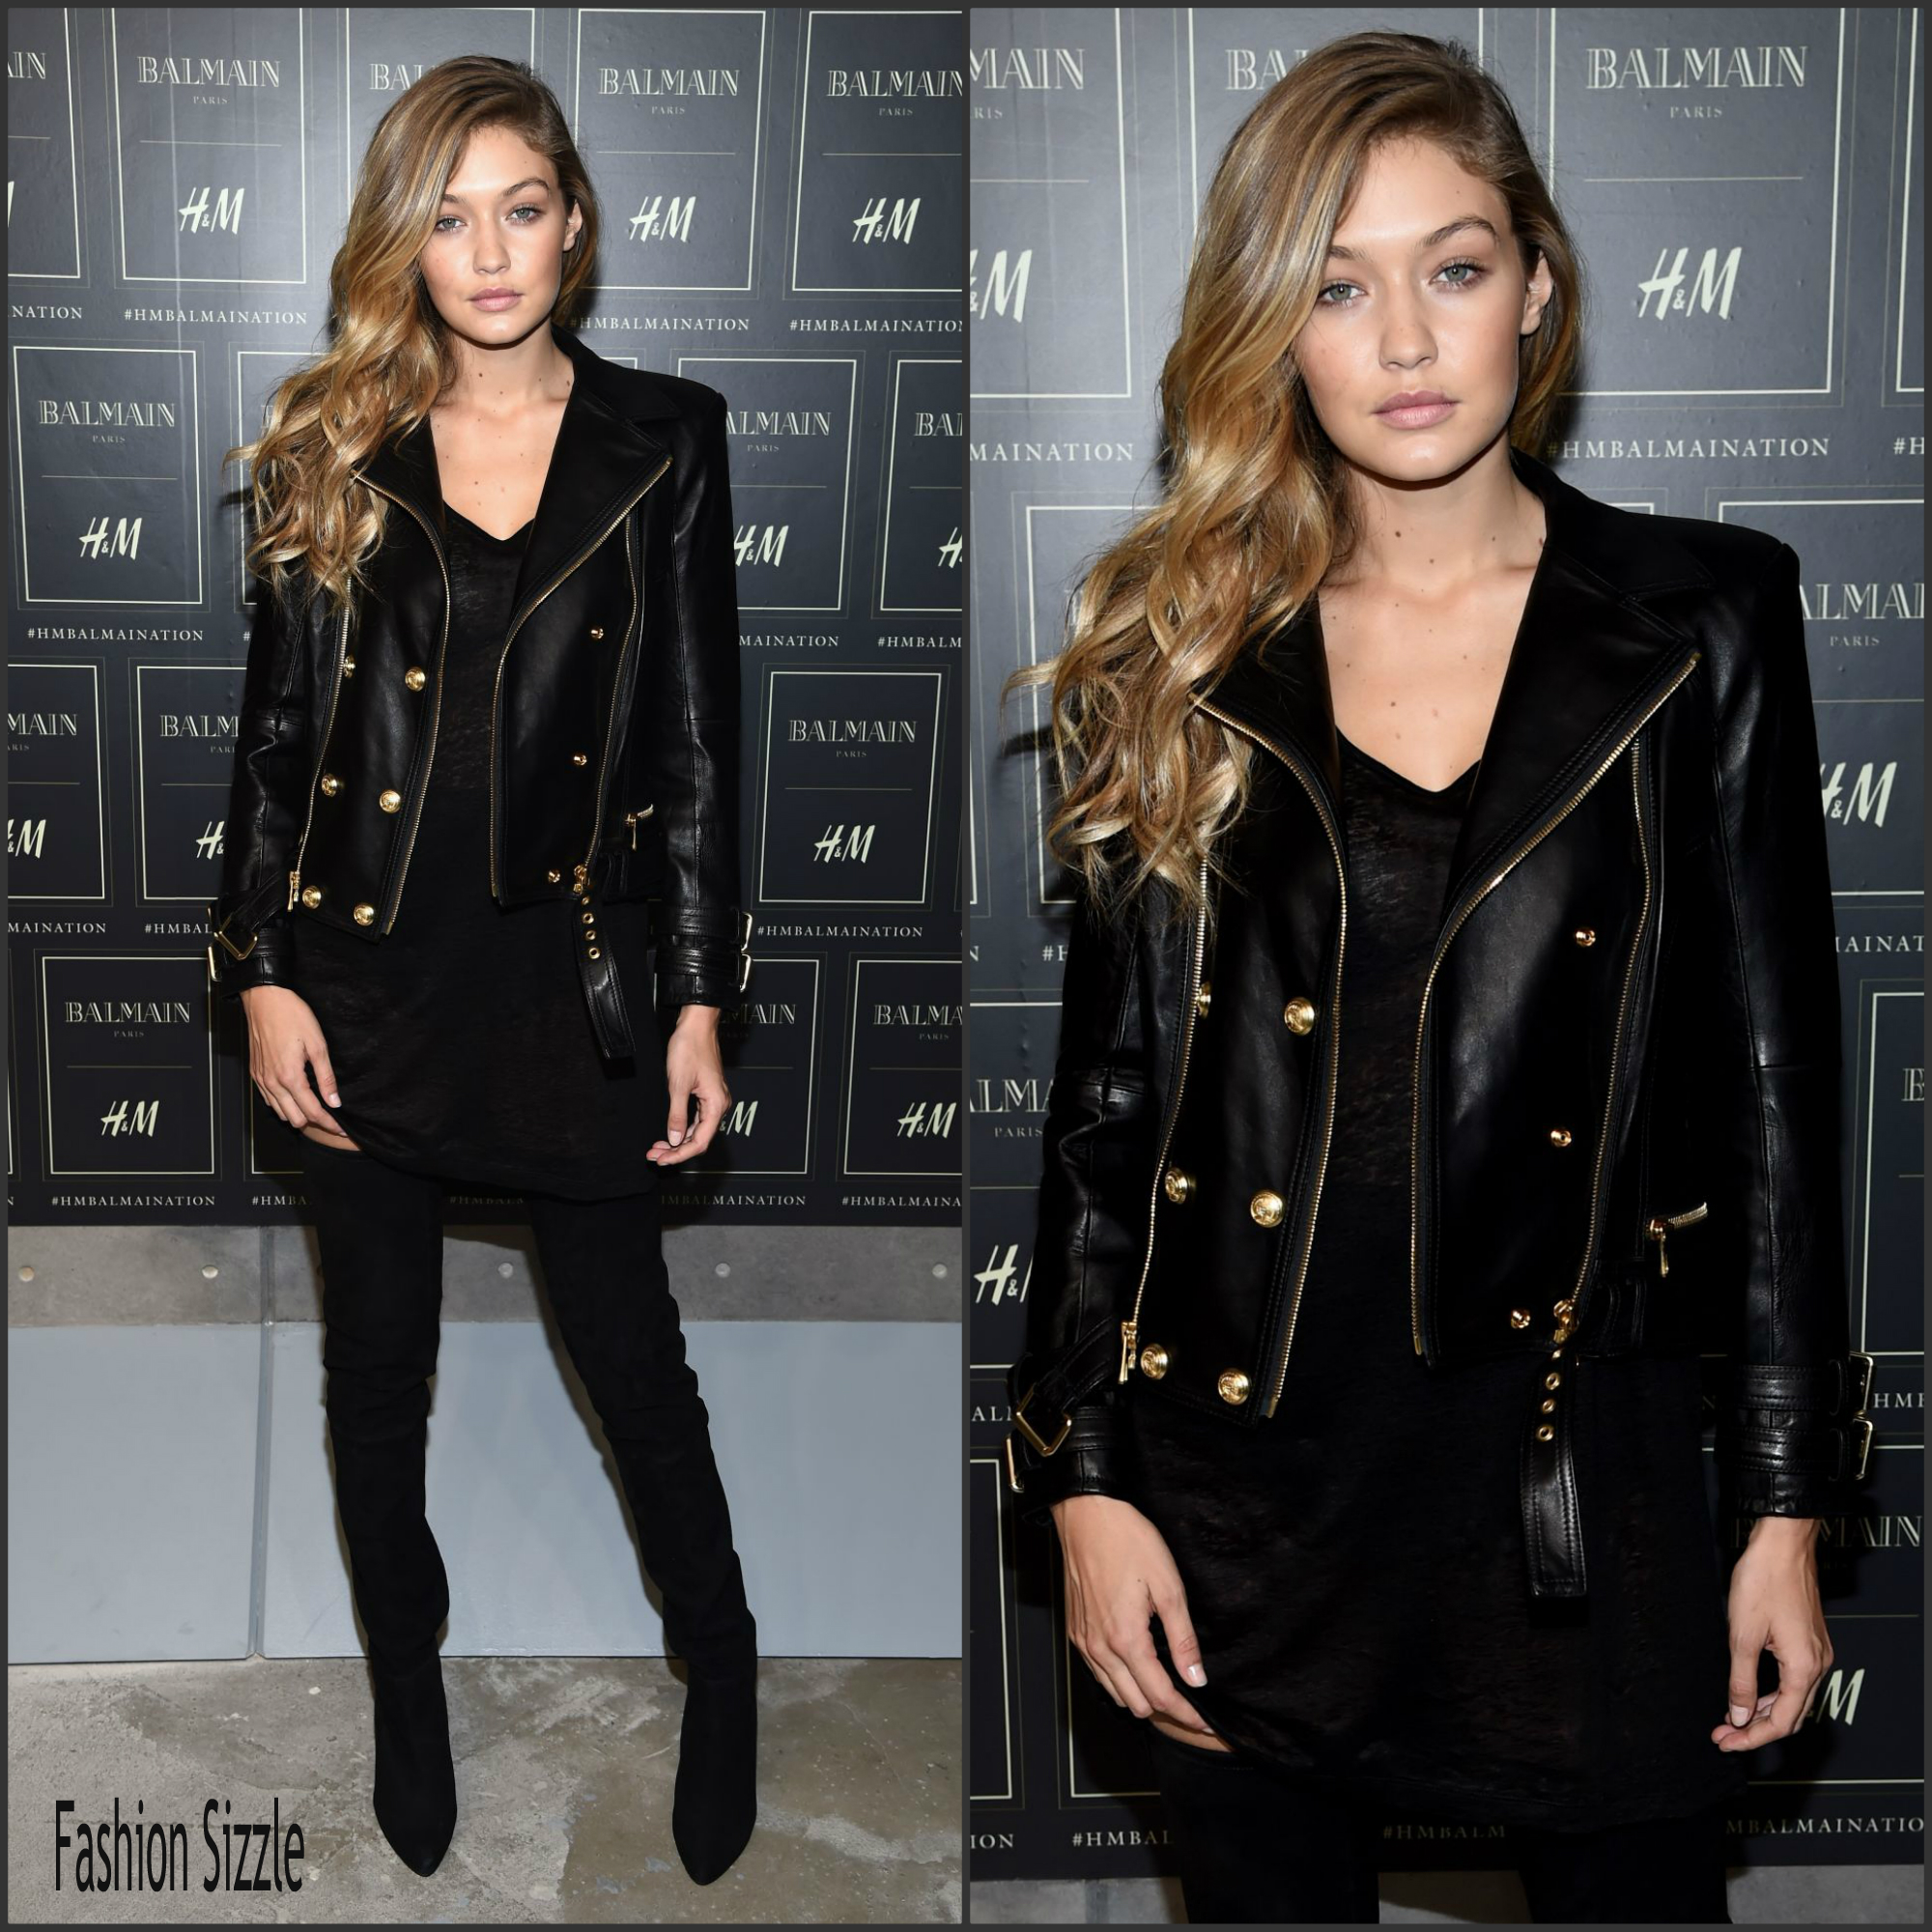 gigi-hadid-balmain-x-h-m-collection-launch-in-new-york